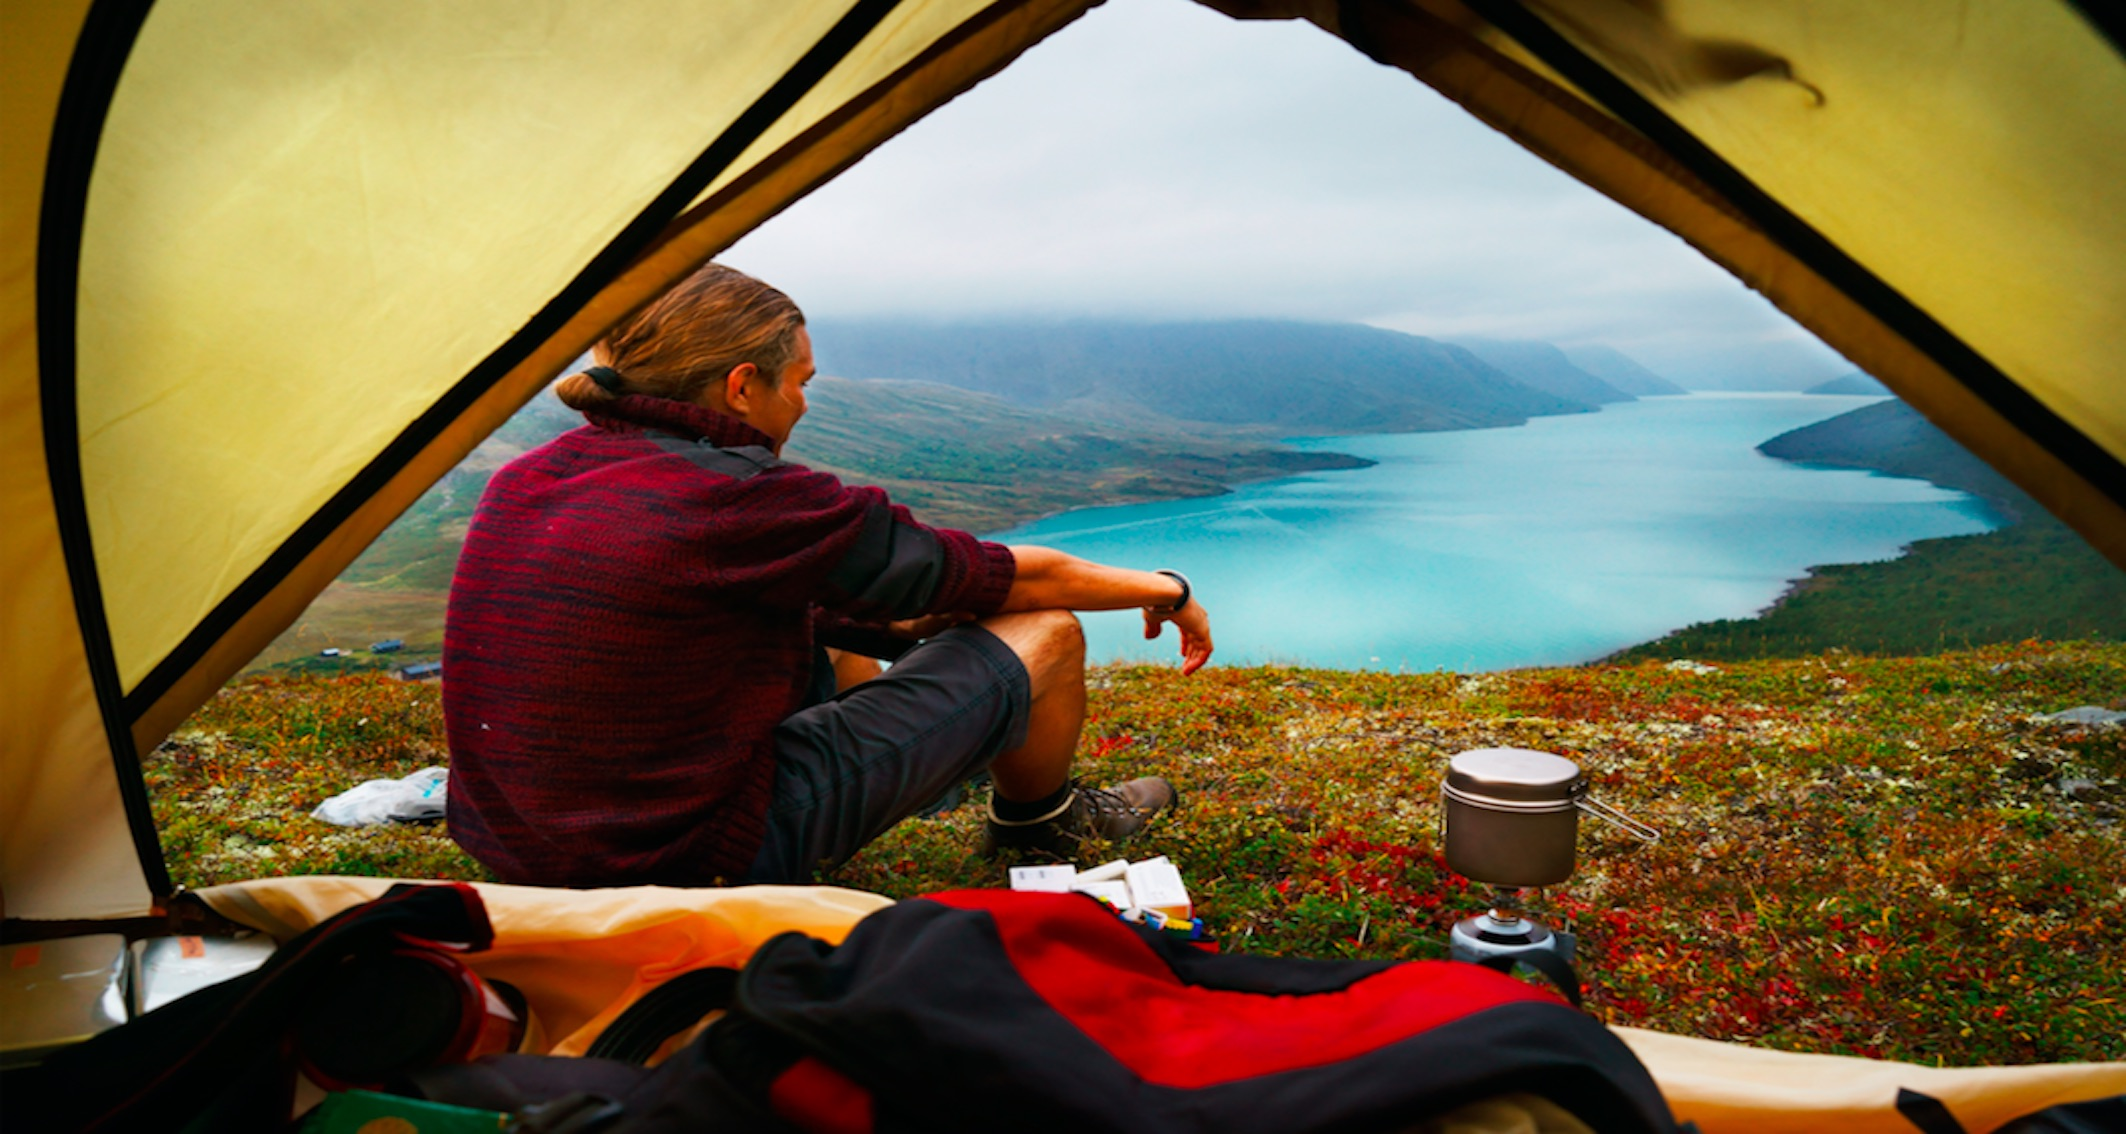 Camping 5 Ways To Make It An Eco Friendly Camping Trip